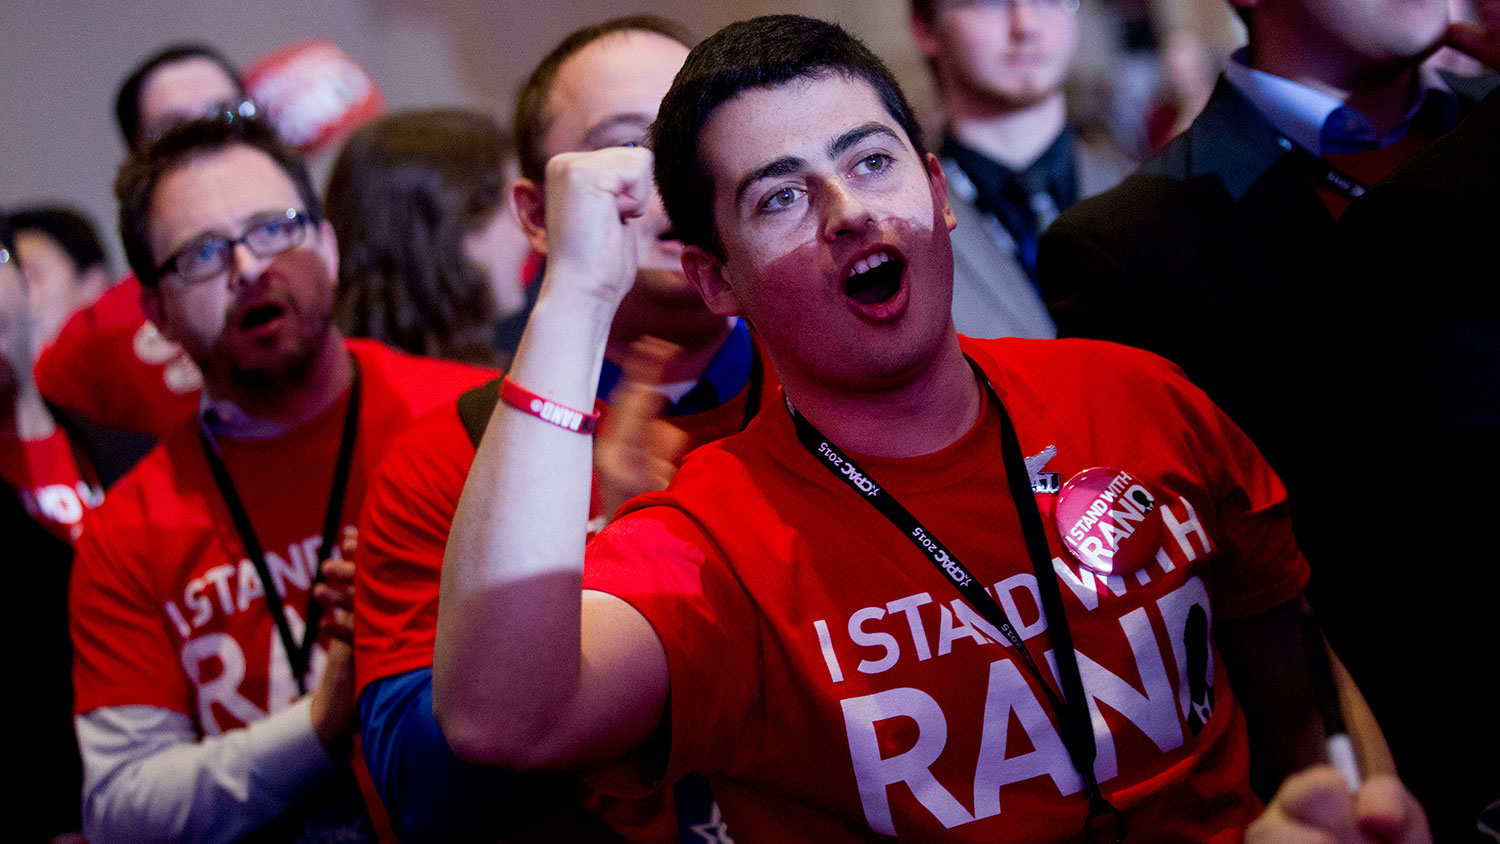 'I Stand with Rand'